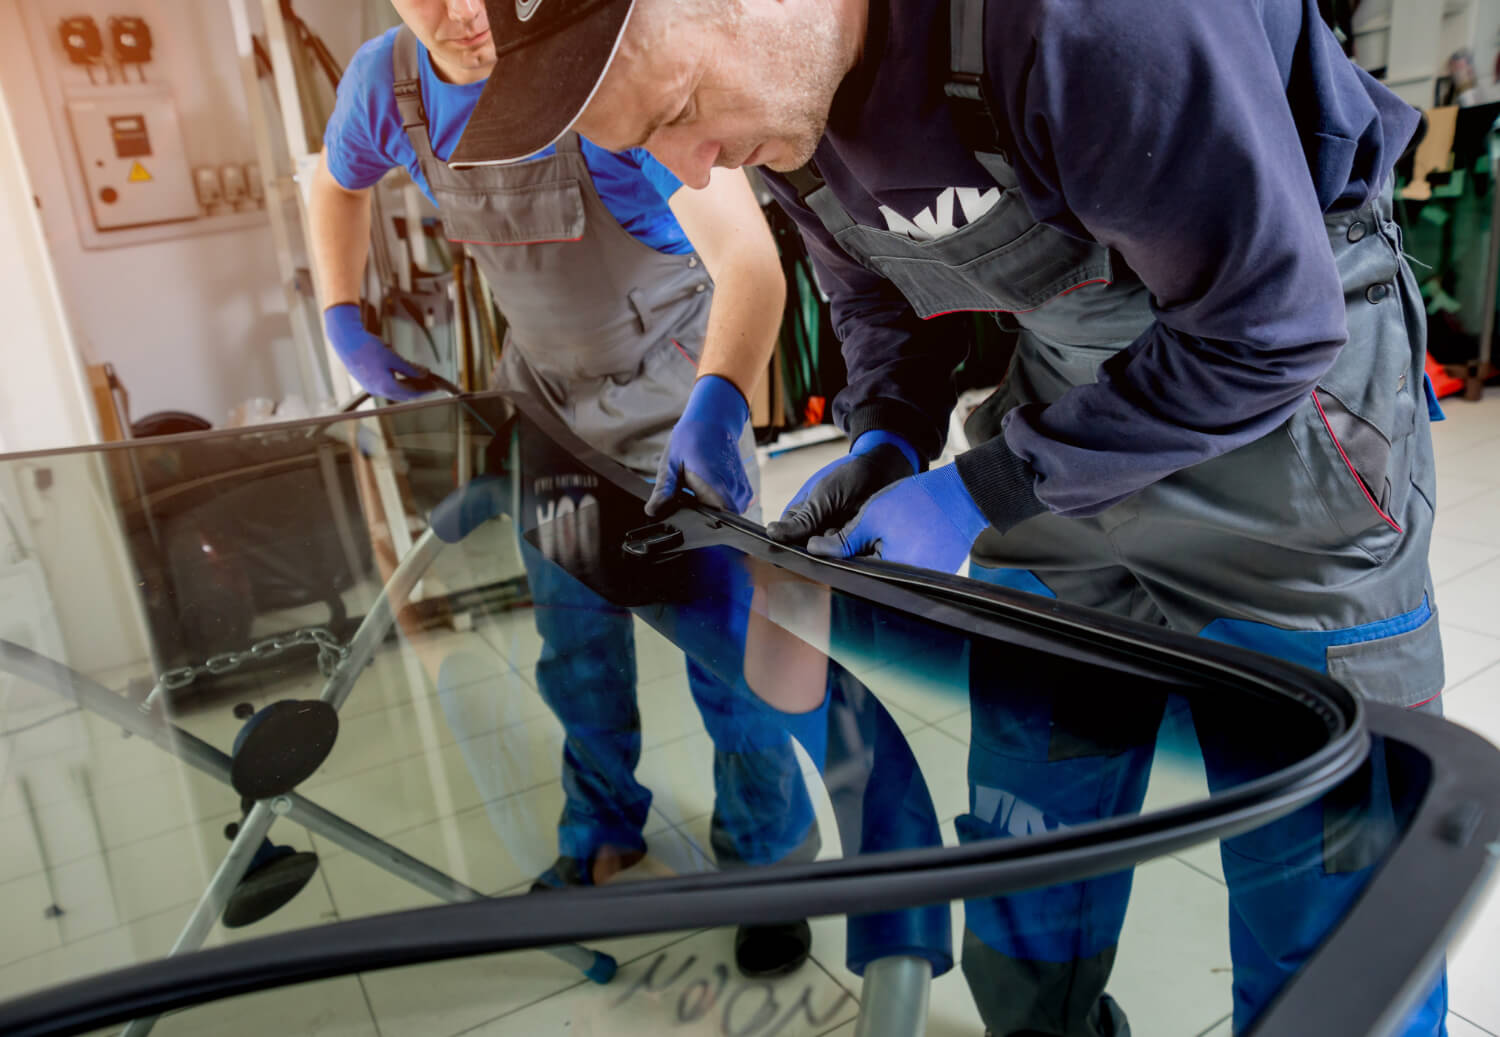 Windscreeen Replacement at Redding's Auto Glass service partner